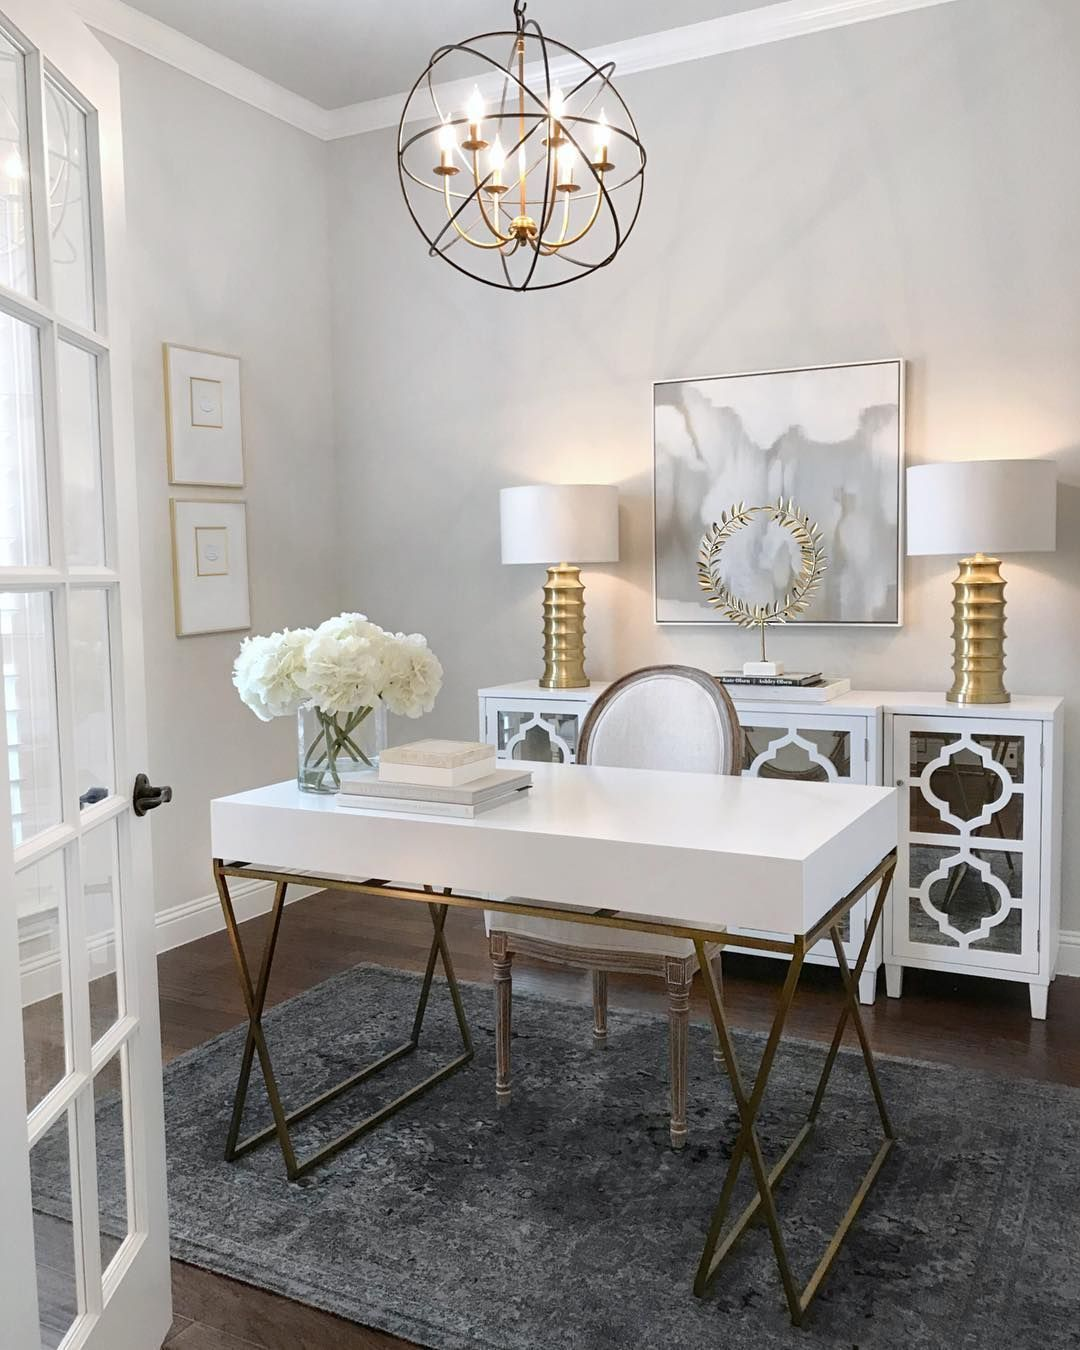 White home office ideas to make your life easier idea organization tips chic brooke rash walden interior design also best images in rh pinterest